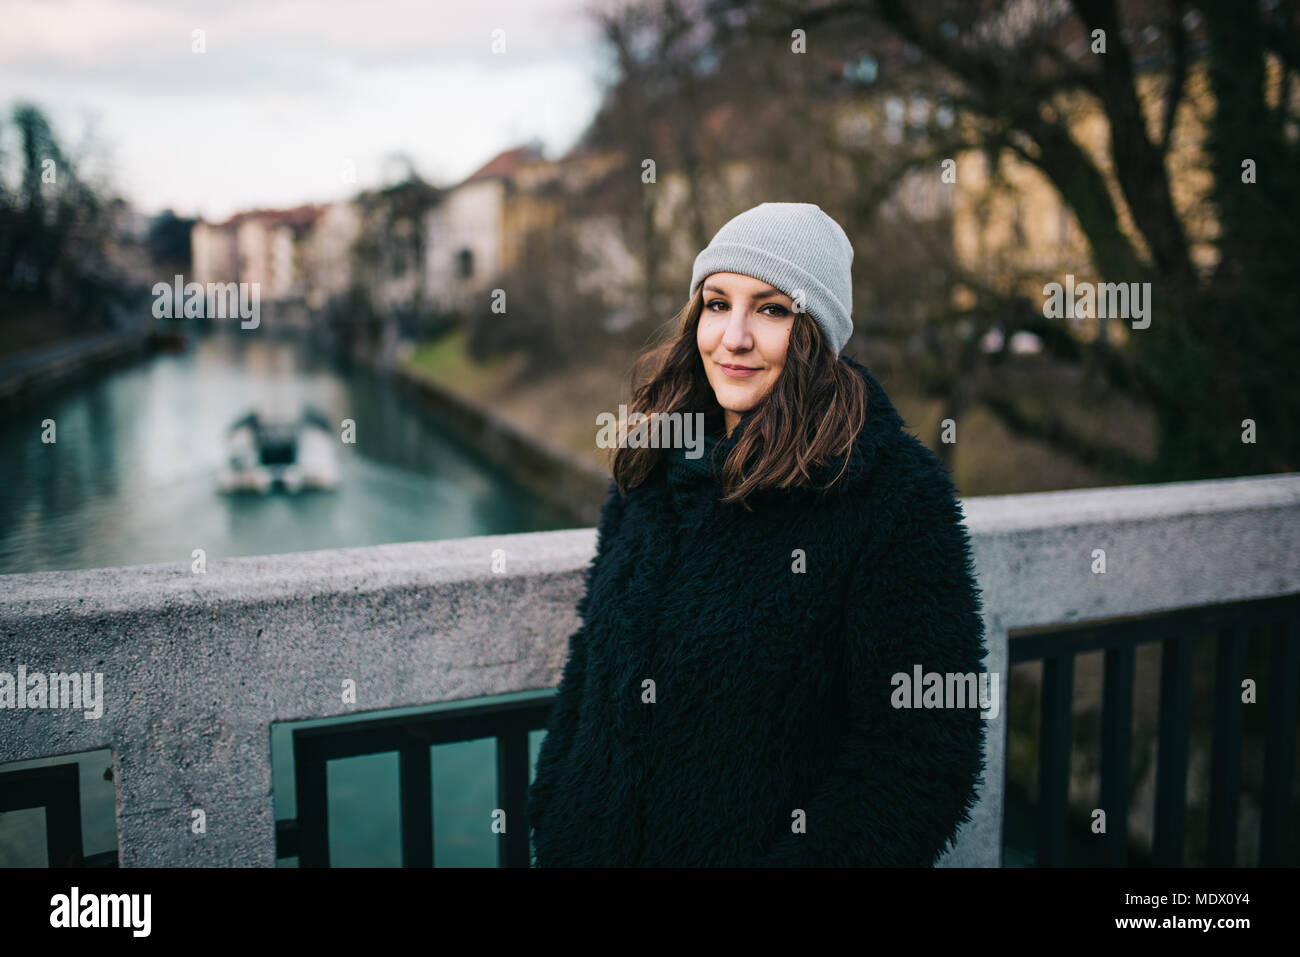 Woman standing on the bridge - Stock Image